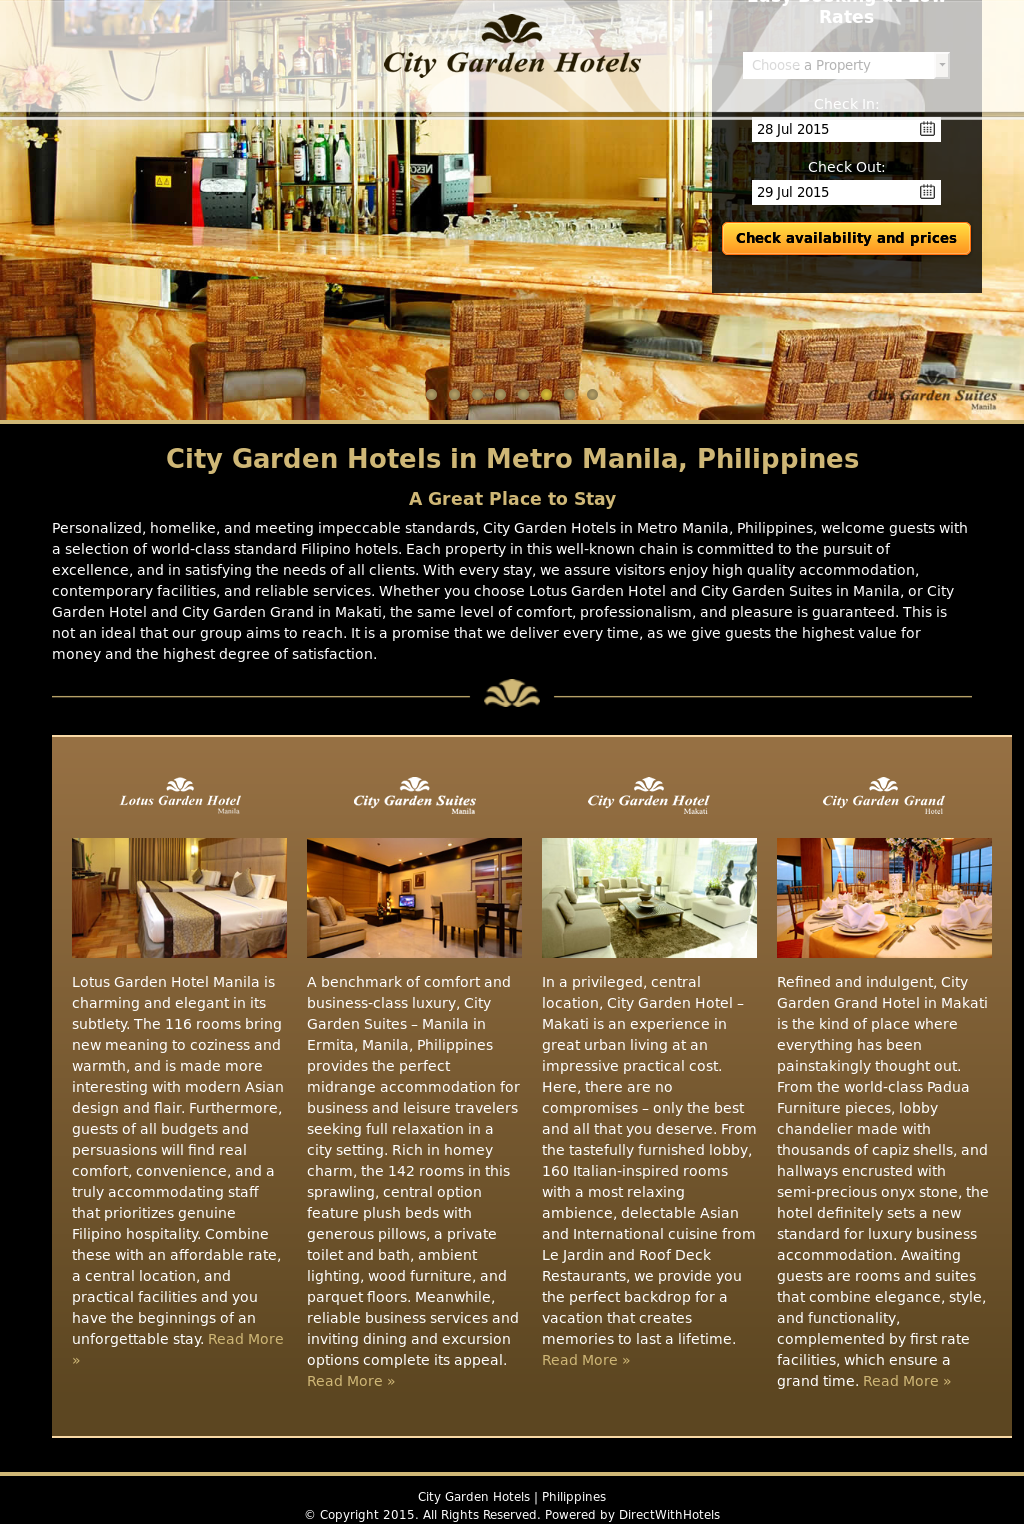 City Garden Hotels Competitors, Revenue and Employees - Owler ...